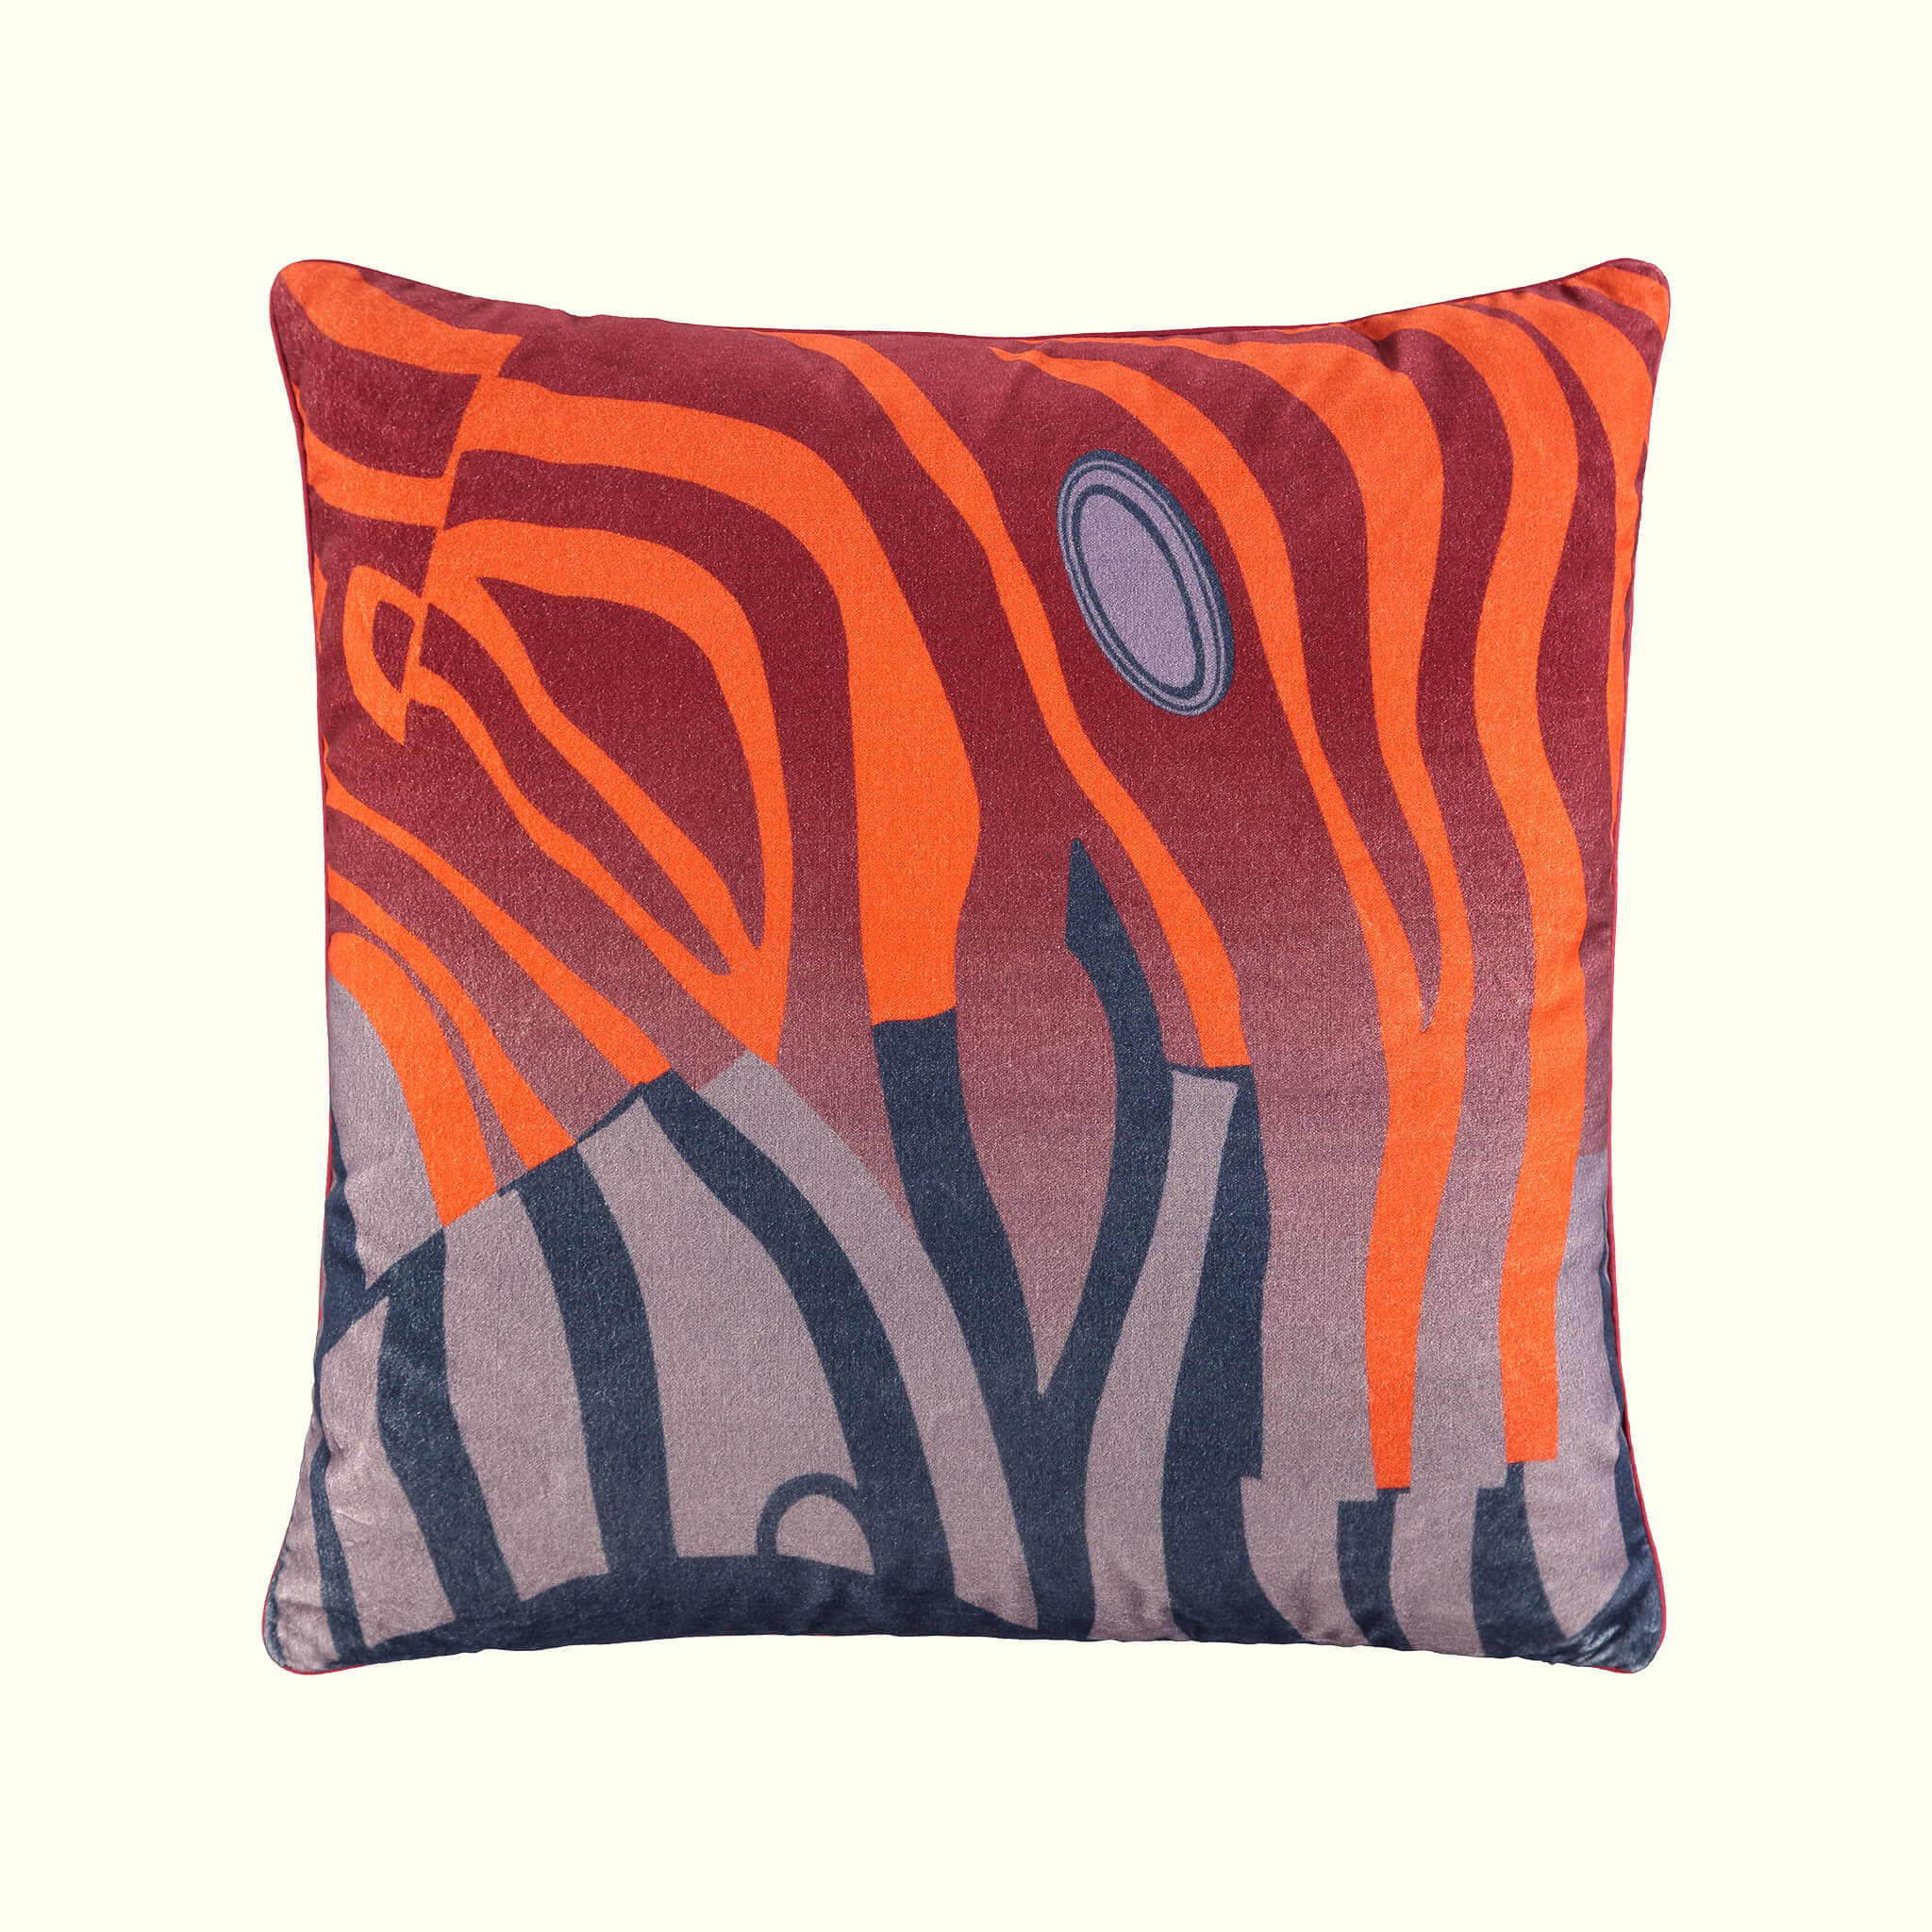 A luxury British cotton velvet cushion by GVE in scarlet and steel Dune print design.